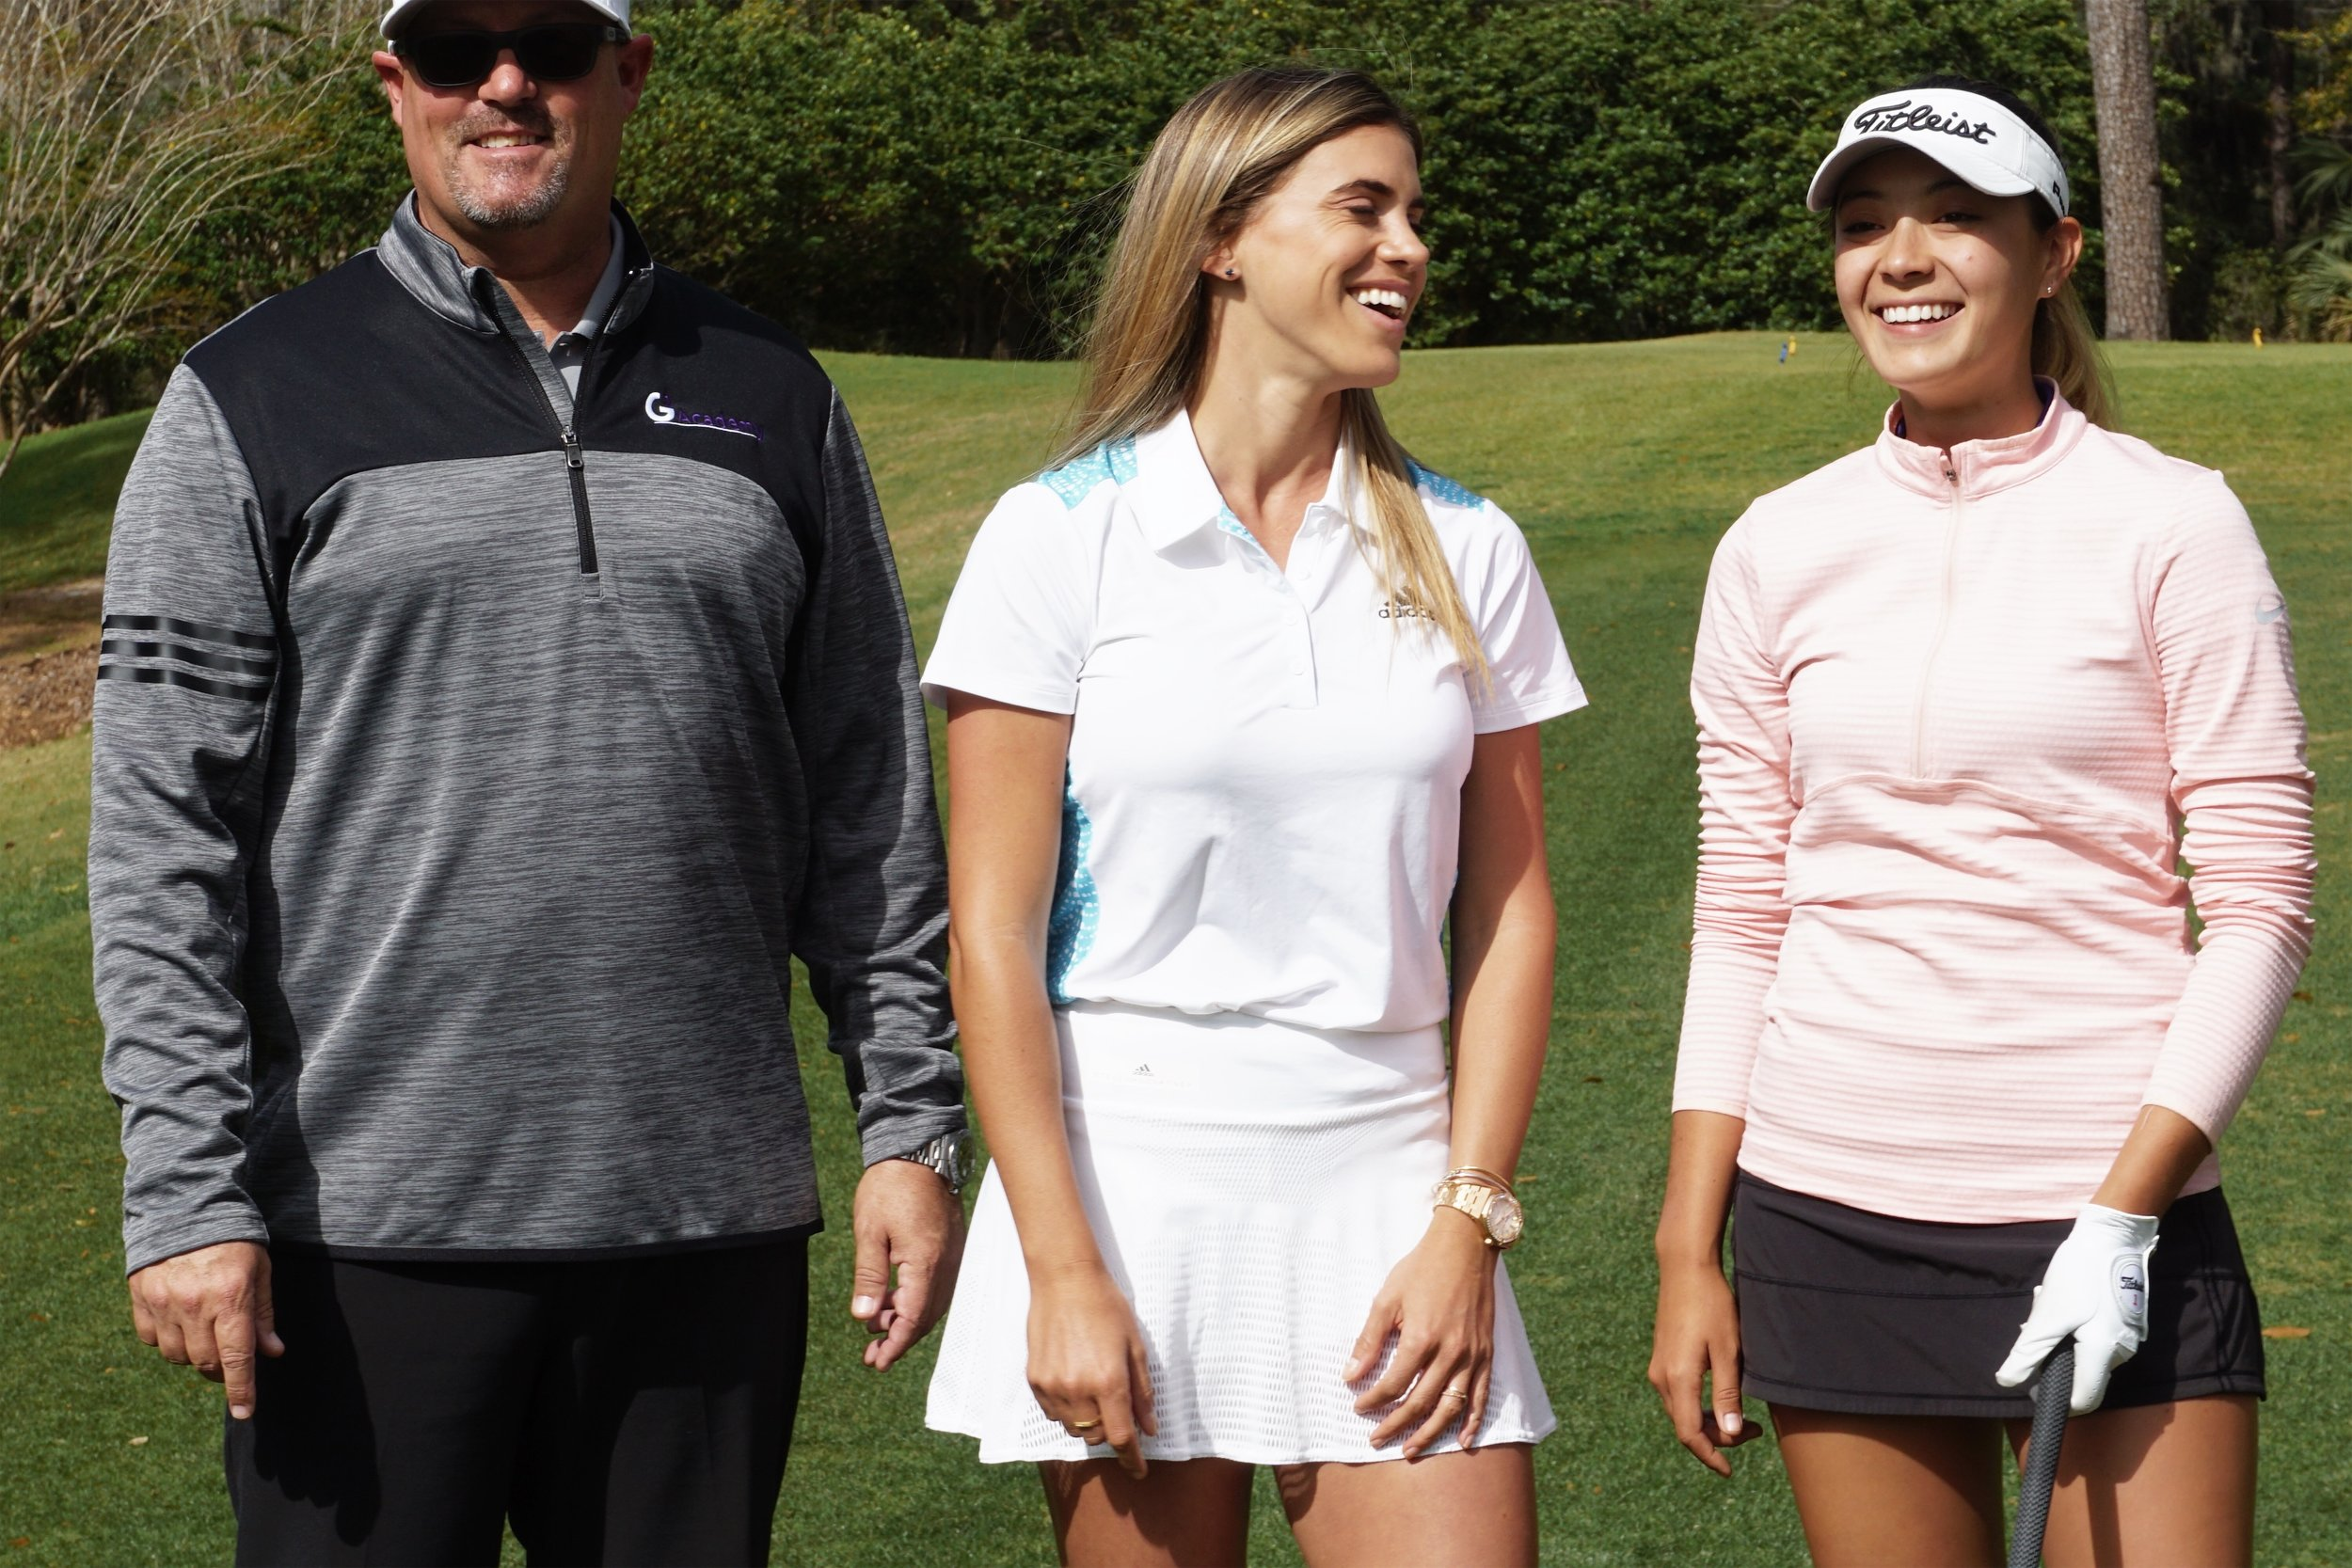 Last month I was able to check out the Academy and their practice facilities. There a future G2 golfer, Mackenzie Gallagher  @kenzieegallagher  and rising start happened to be practicing there with Coach Matt Fields  @mattfieldspga . They were nice enough to let me tag along to ask a few questions and getting to know Mackenzie and what were the things they were working on at the range and on the golf course.